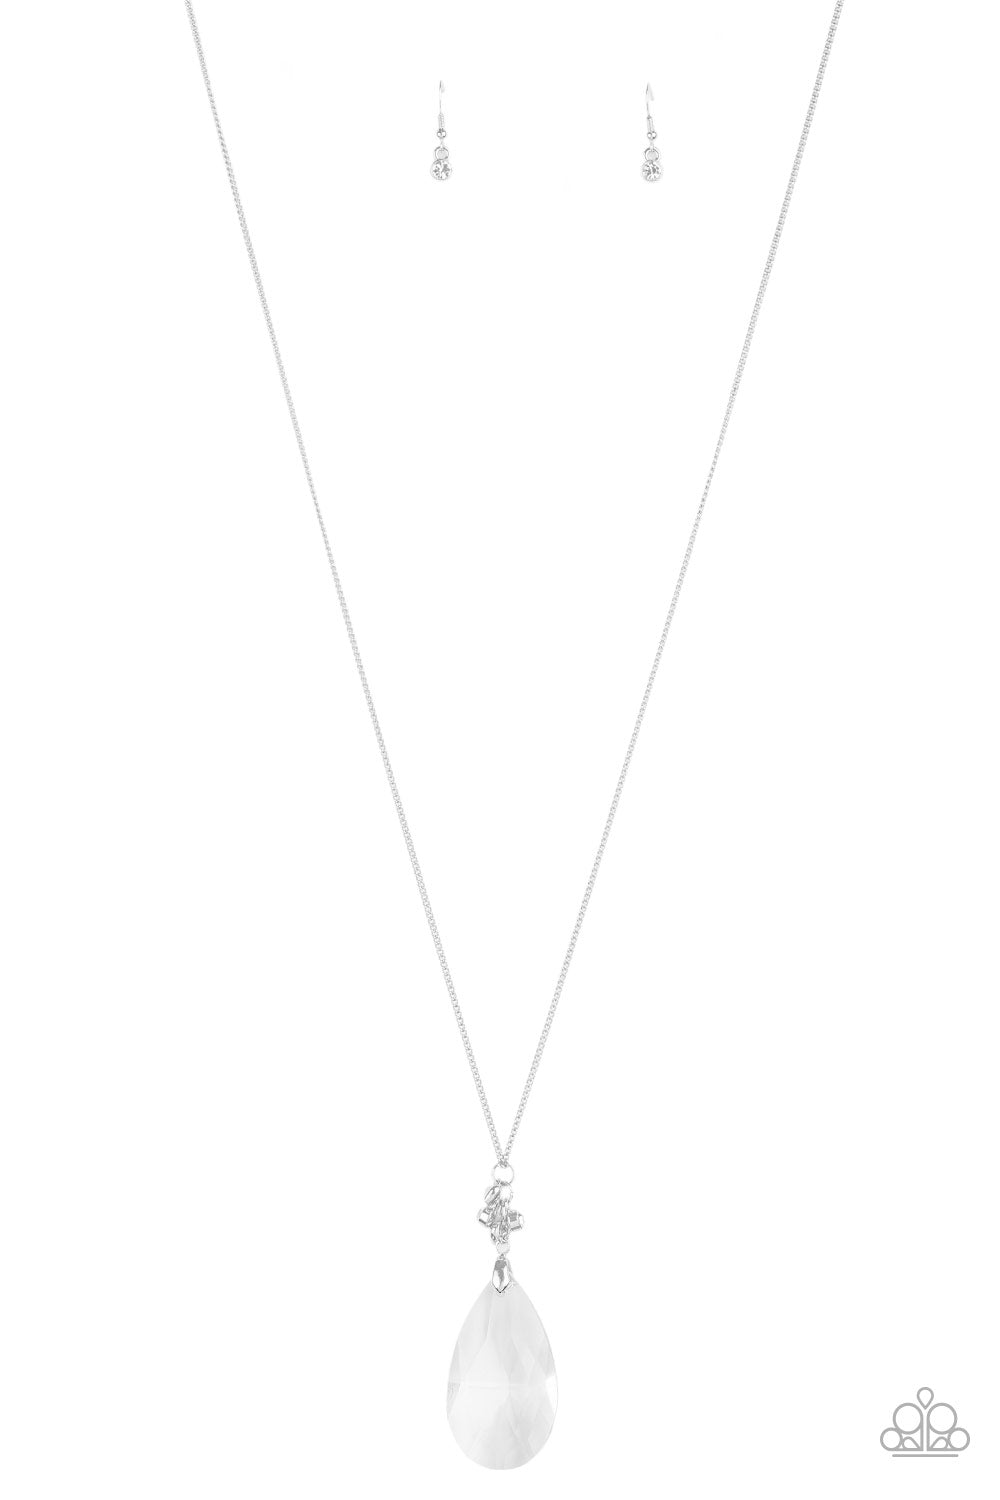 Paparazzi Necklace LOP August ~ Up in the Heir - White